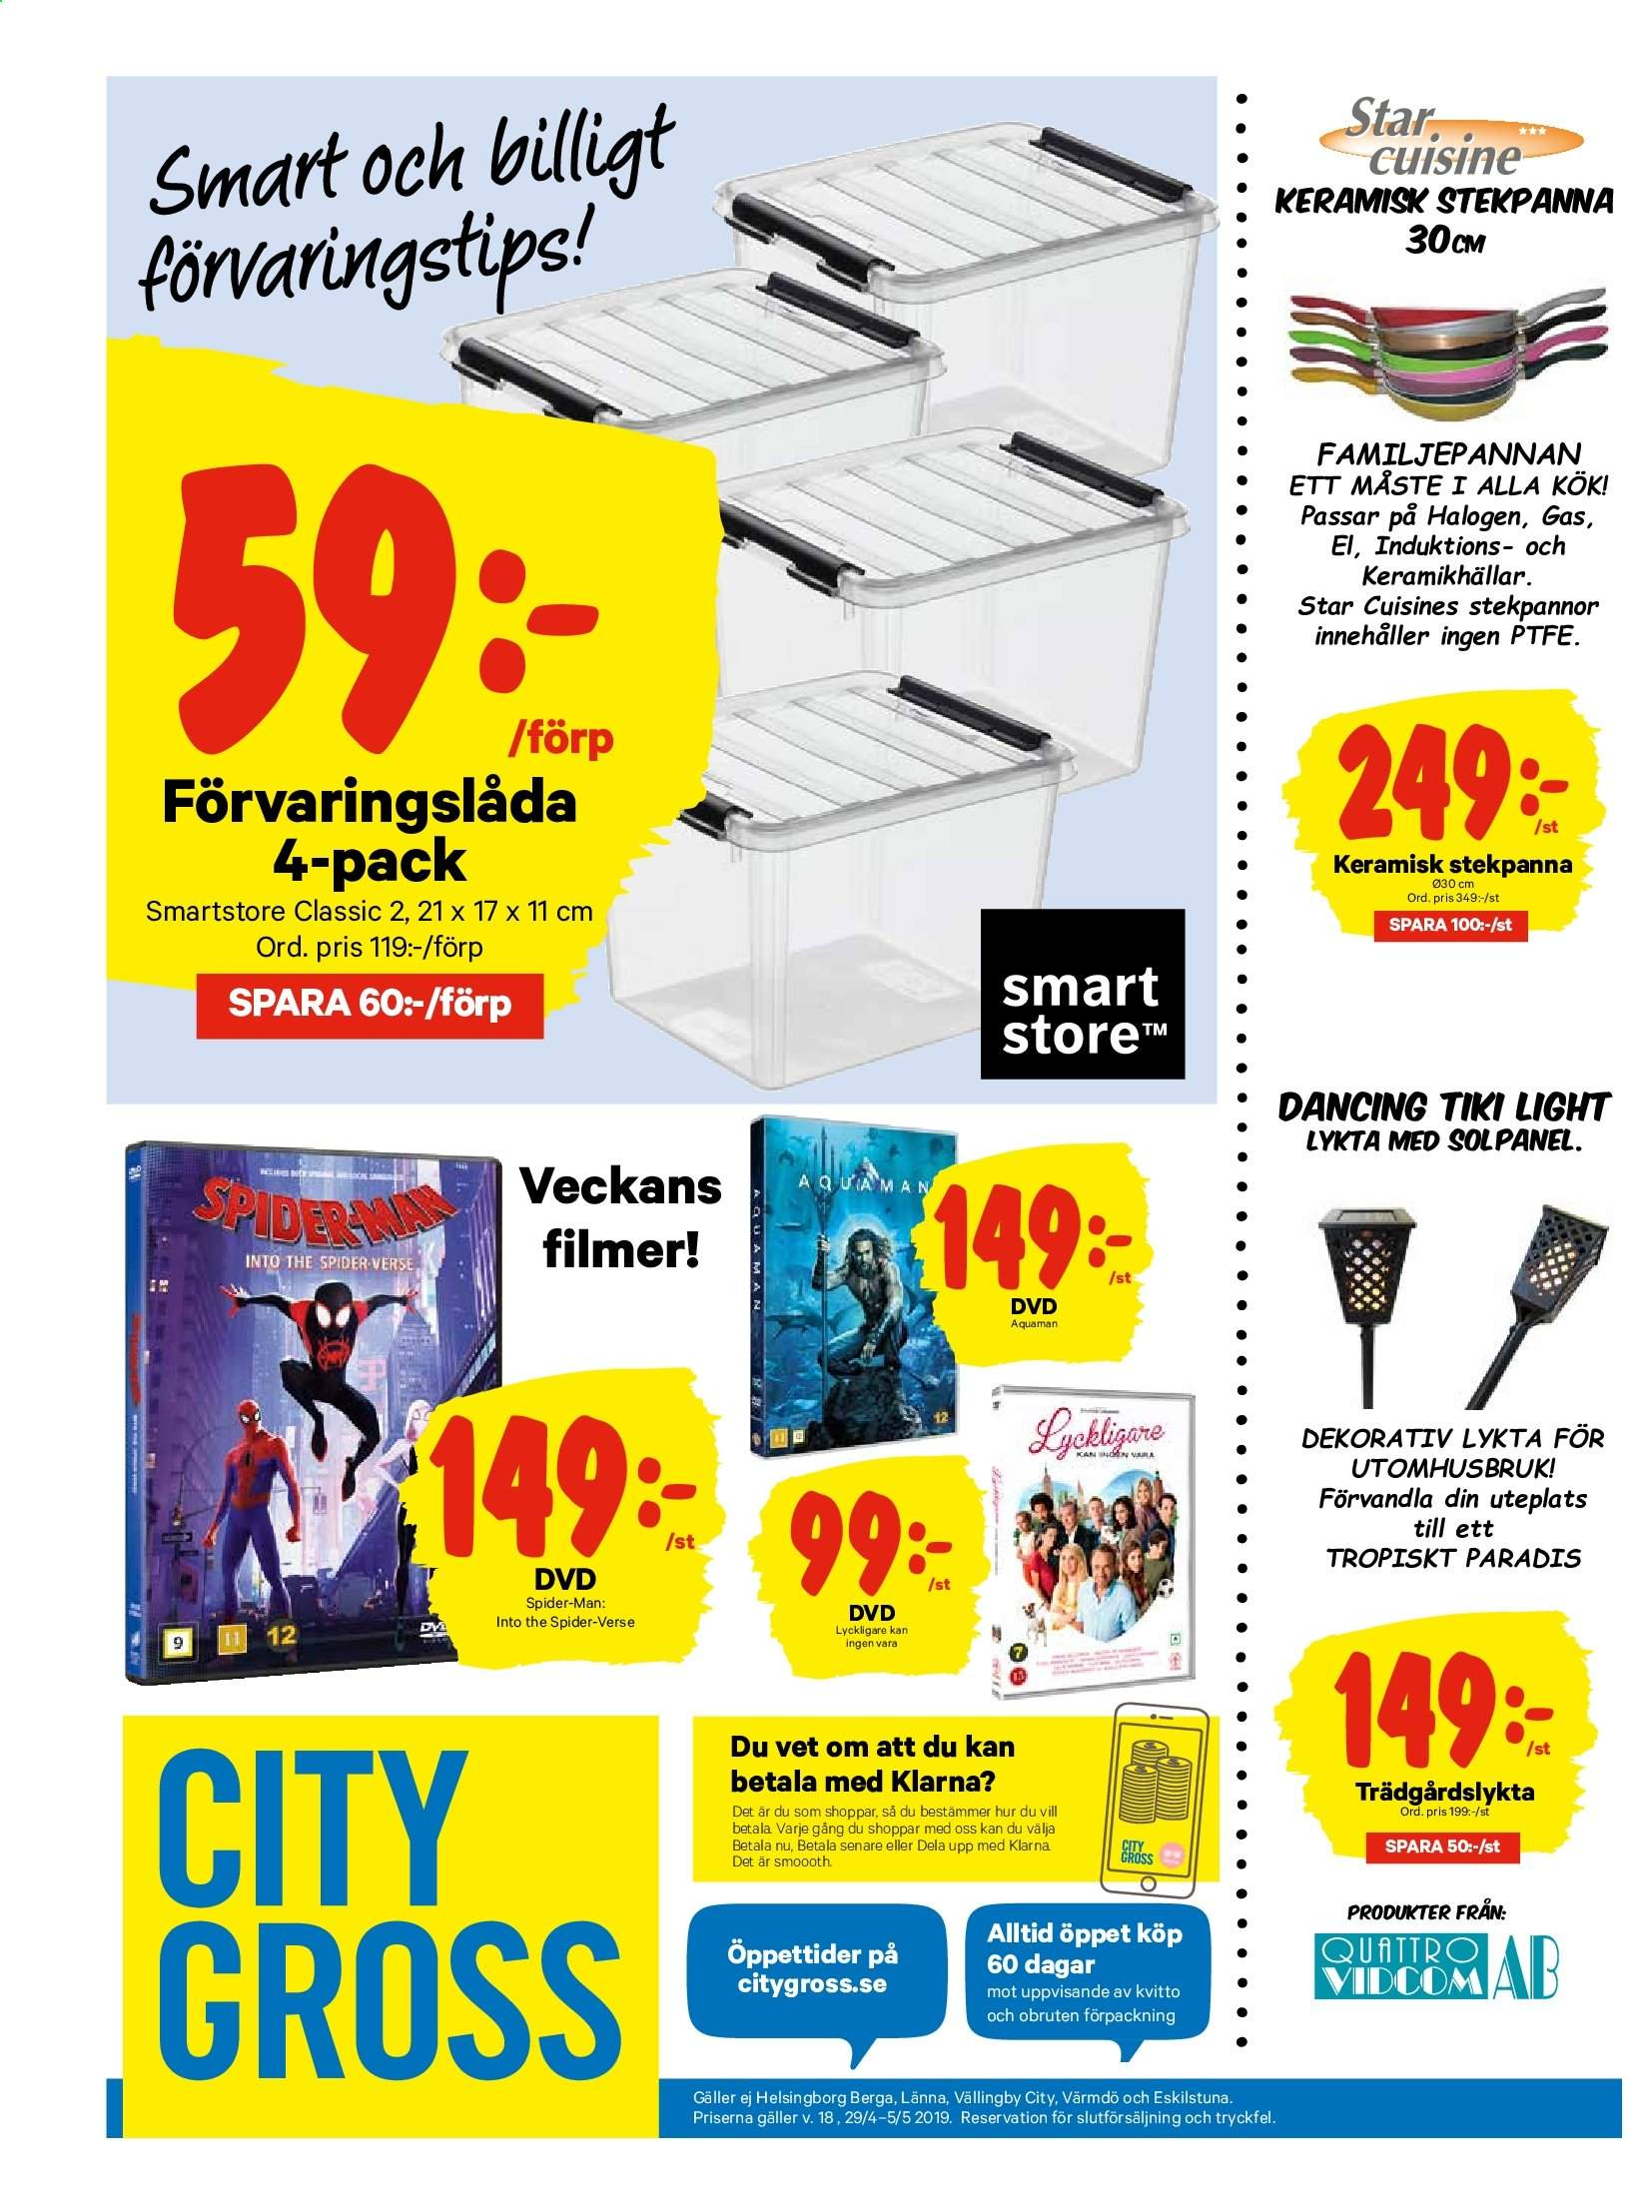 City Gross reklamblad - 29/4 2019 - 5/5 2019. Sida 15.